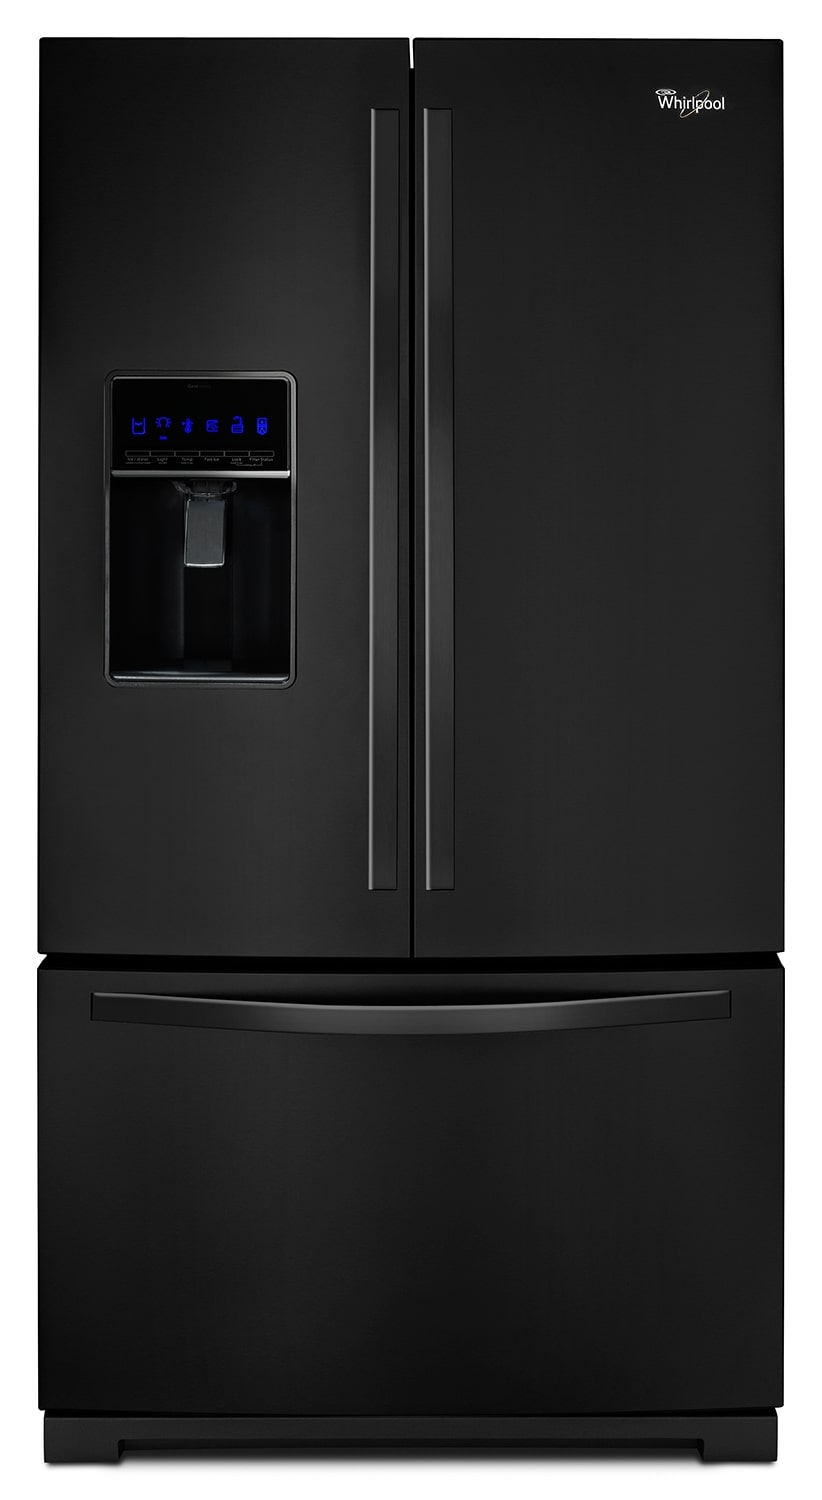 Refrigerators and Freezers - Whirlpool Black French Door Refrigerator (24.7 Cu. Ft.) - WRF736SDAB